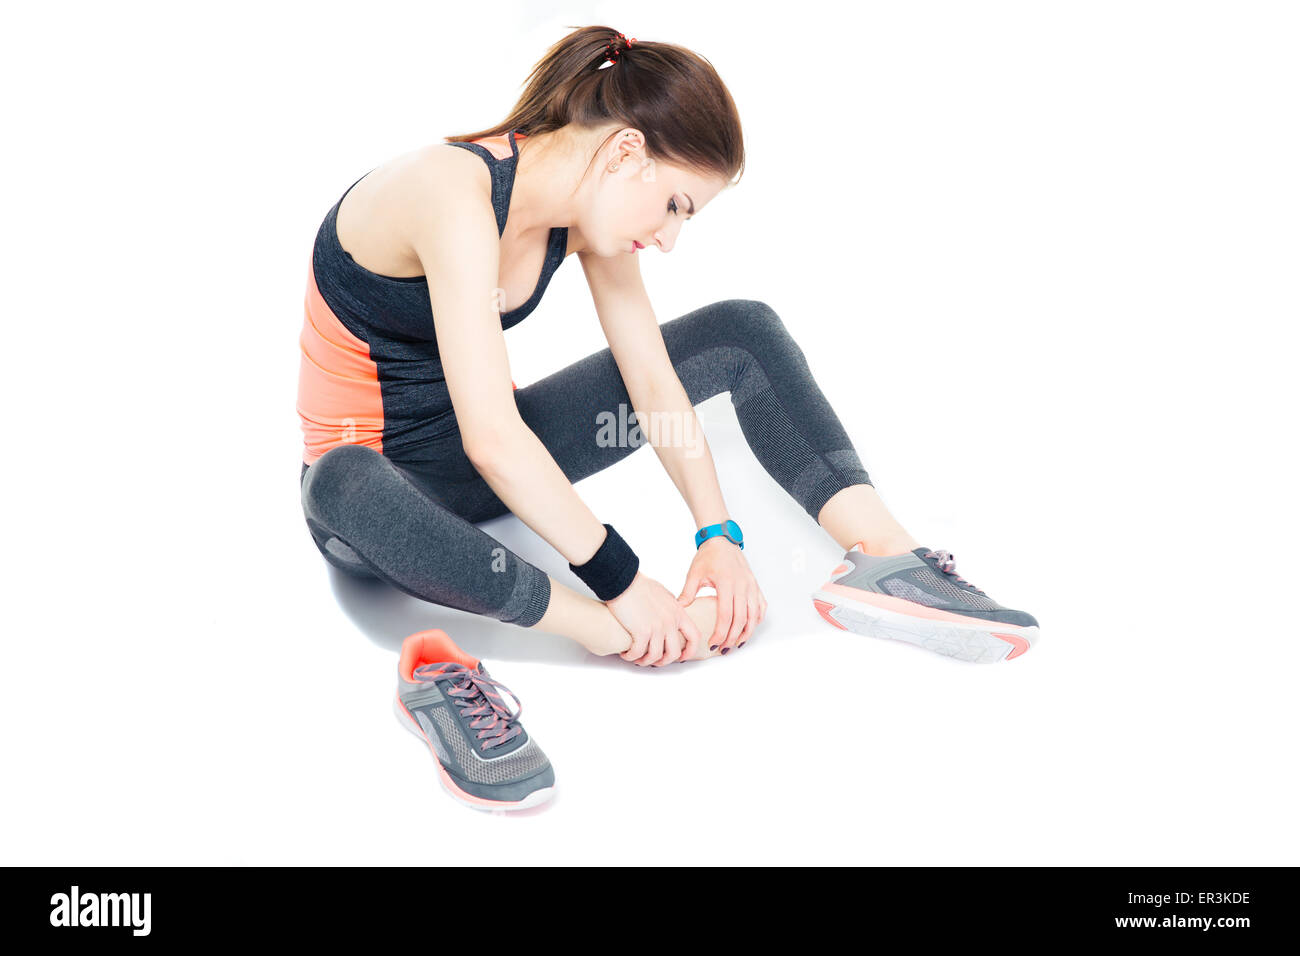 Portrait of a sporty woman with pain on leg isolated on a white background - Stock Image